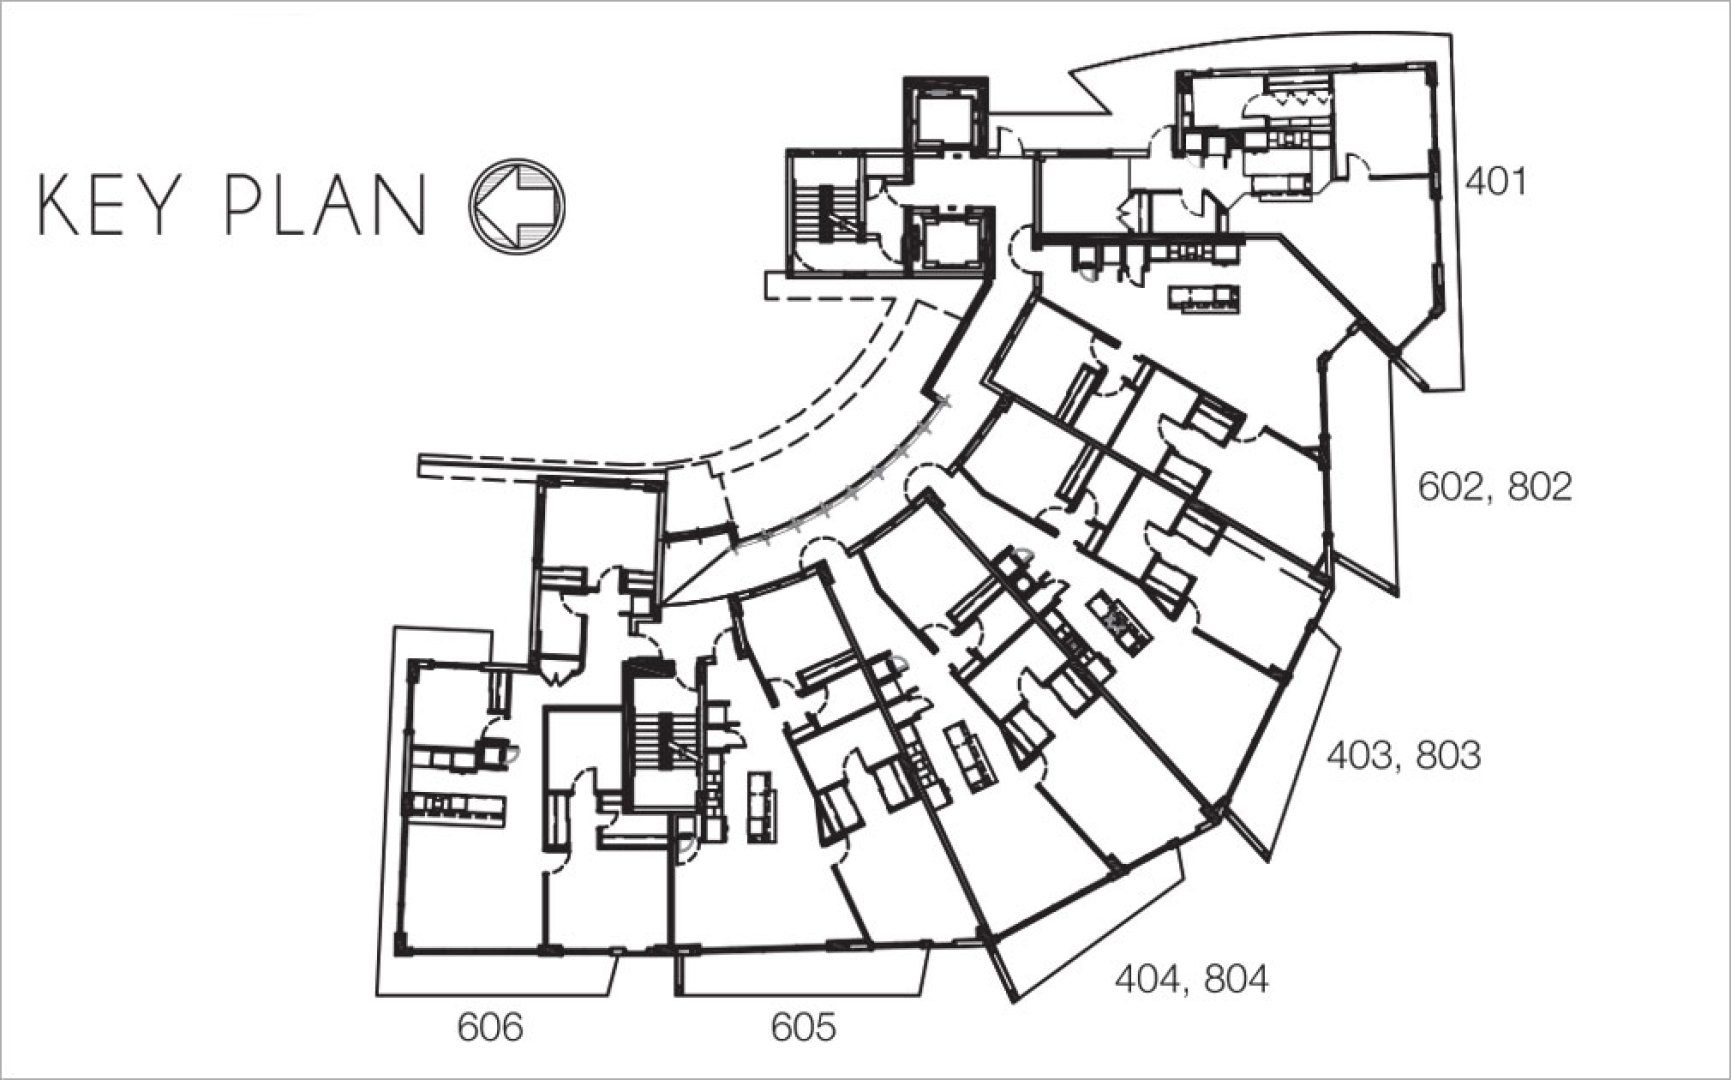 Siteplan for O Residences, Luxury Waterfront Condominiums Located at 9821 E Bay Harbor Dr, Miami, FL 33154